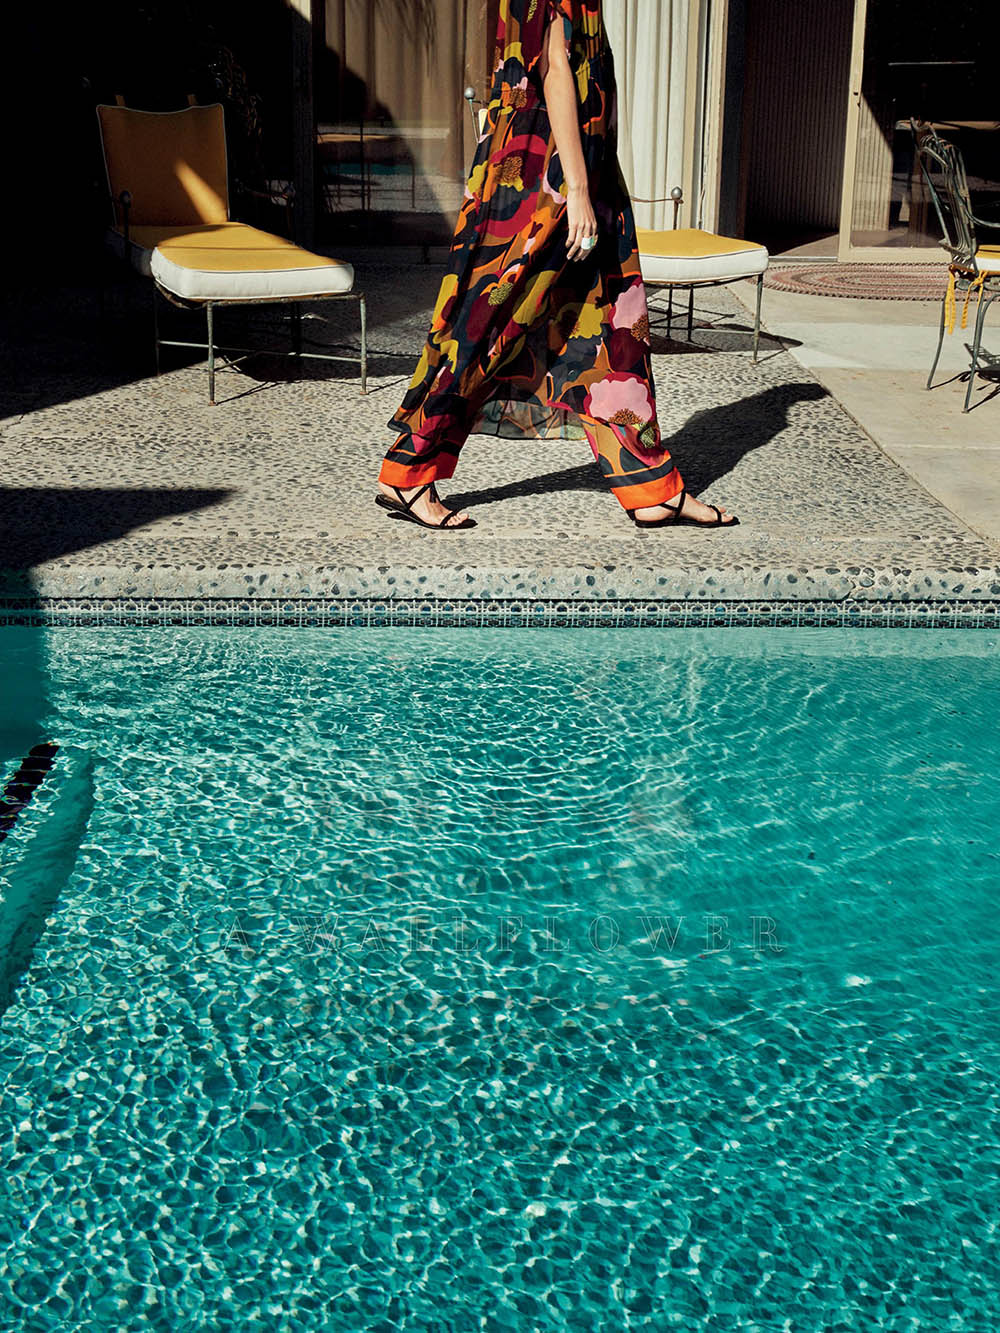 Charlee Fraser by Sofia Sanchez & Mauro Mongiello for Harper's Bazaar Singapore May 2020